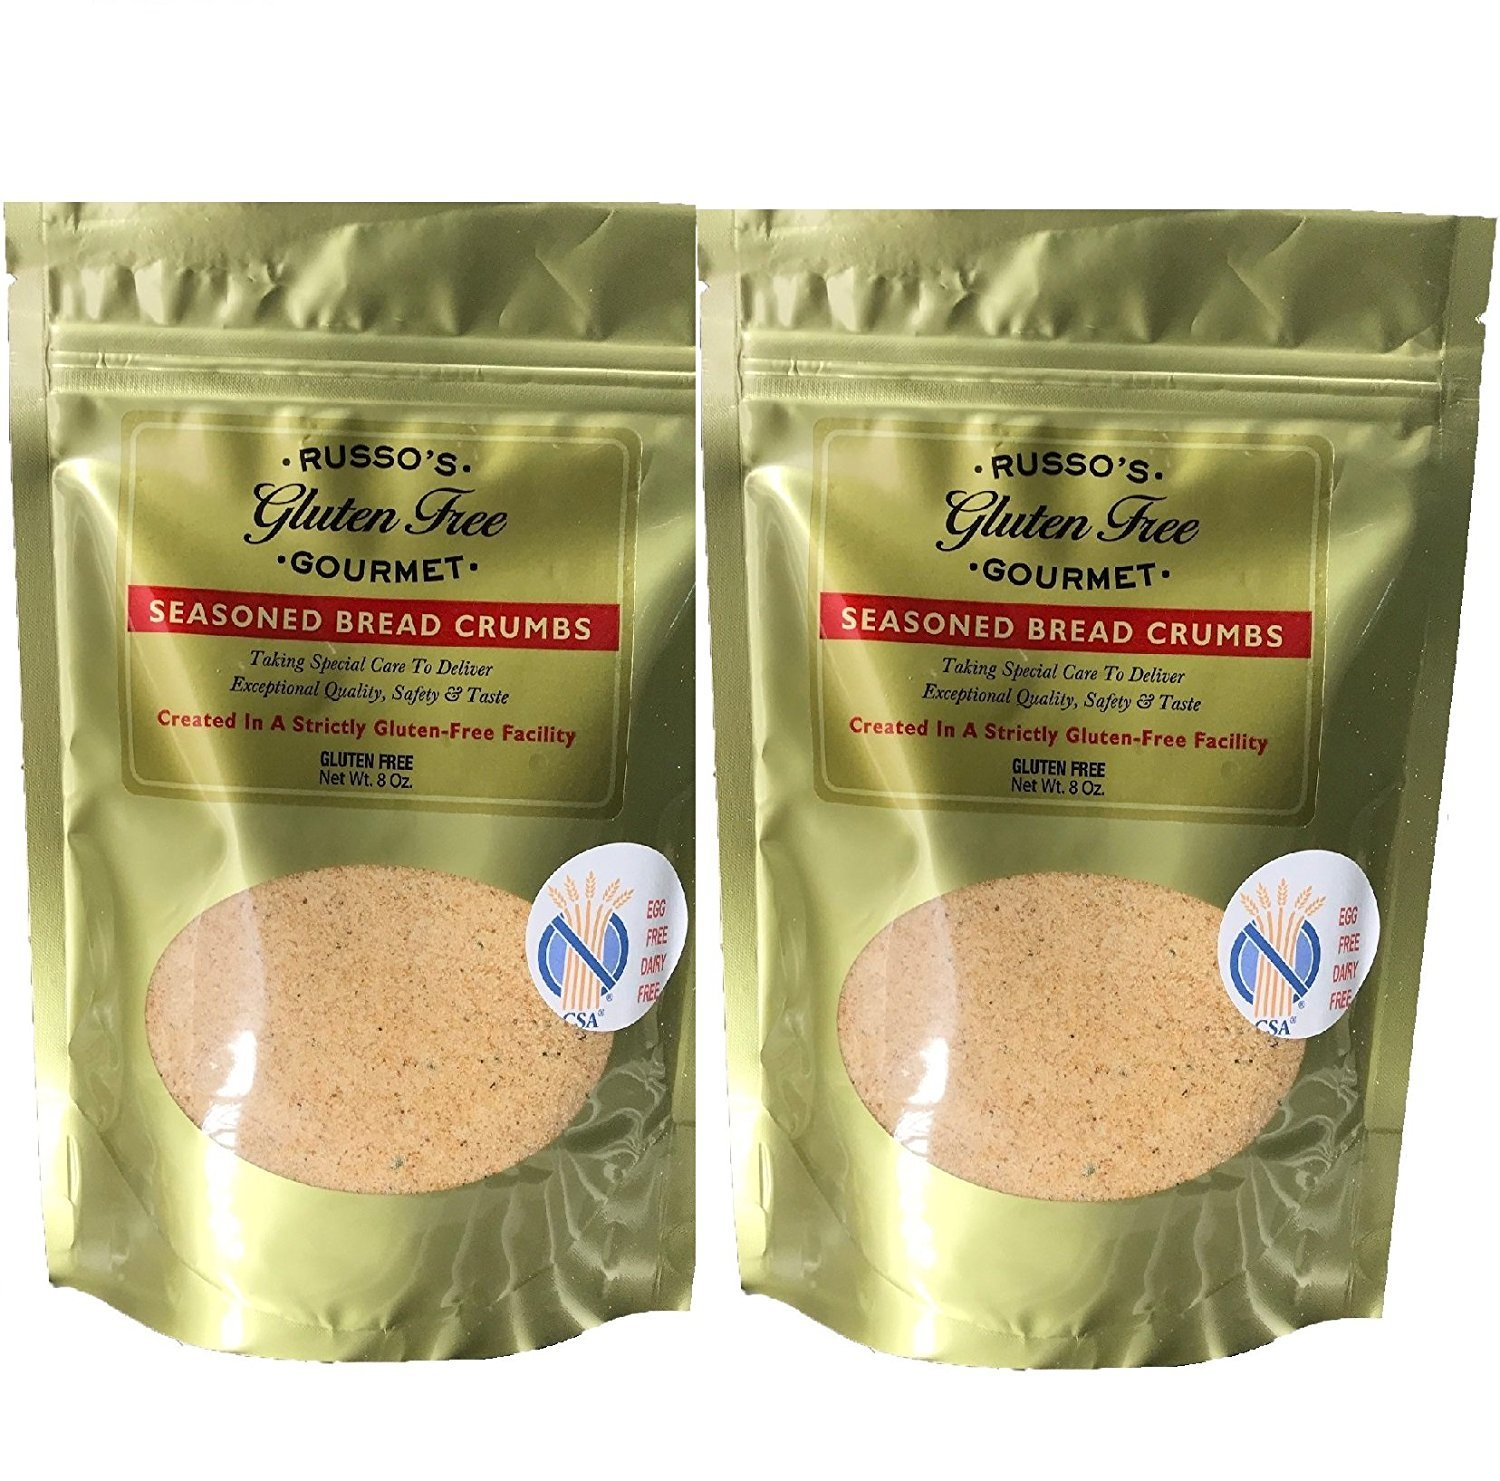 Russo's Gluten Free Bread crumbs (2 Pack X 8 Oz) - Seasoned Absolutely Gluten Free Breadcrumbs -Delicious & Tasty, Made in a strictly Glutenfree Facility by Russo's Gluten Free Gourmet (Image #1)